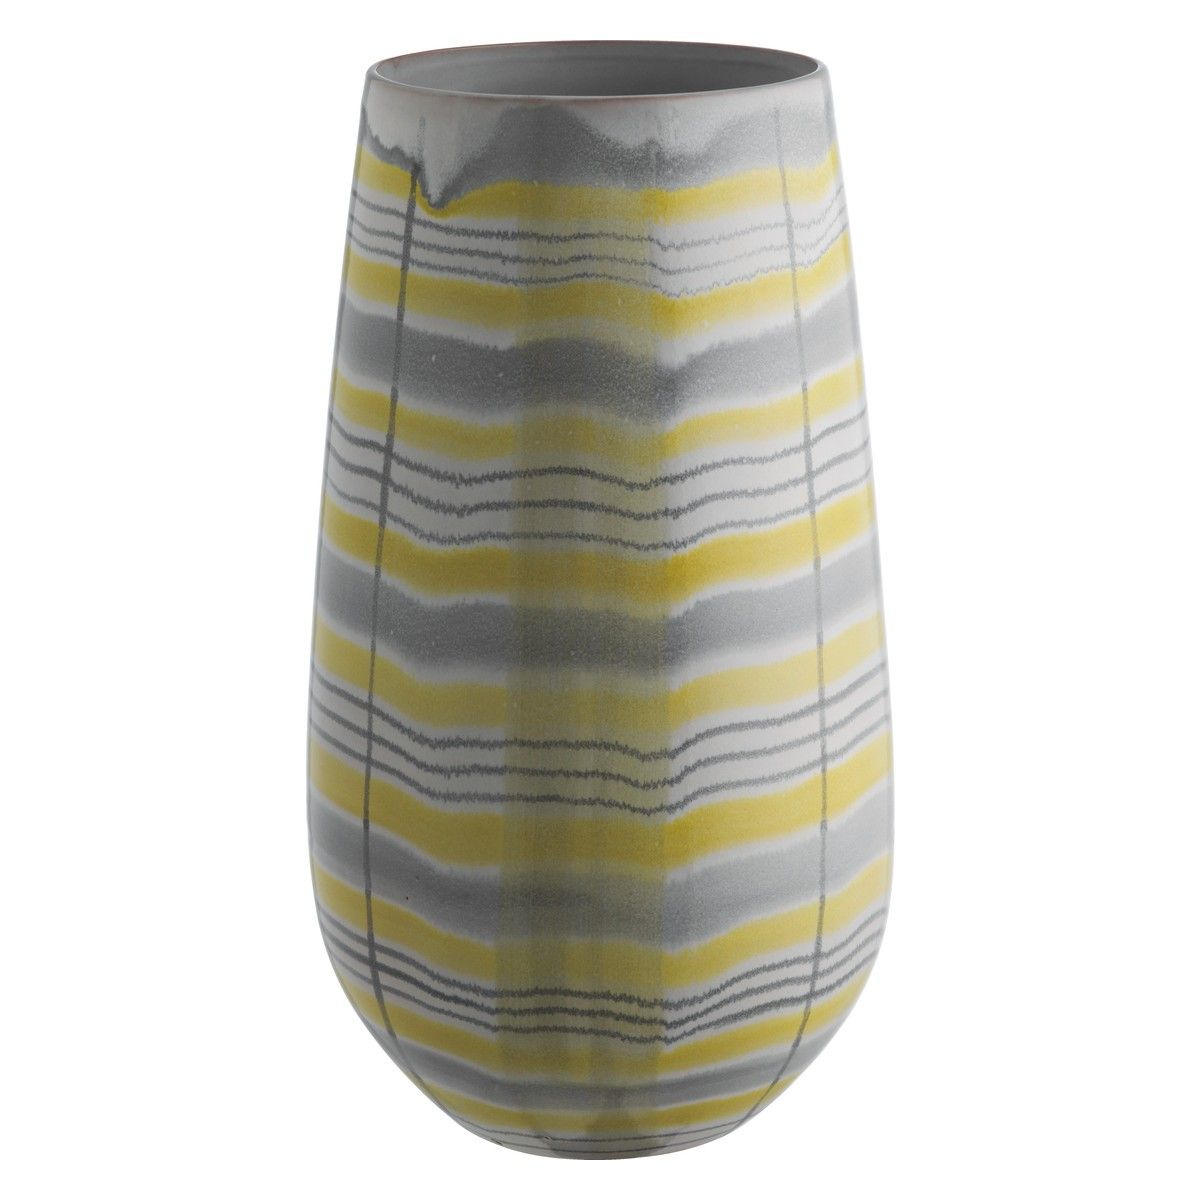 MOWAT Grey and yellow patterned vase | Buy now at Habitat UK